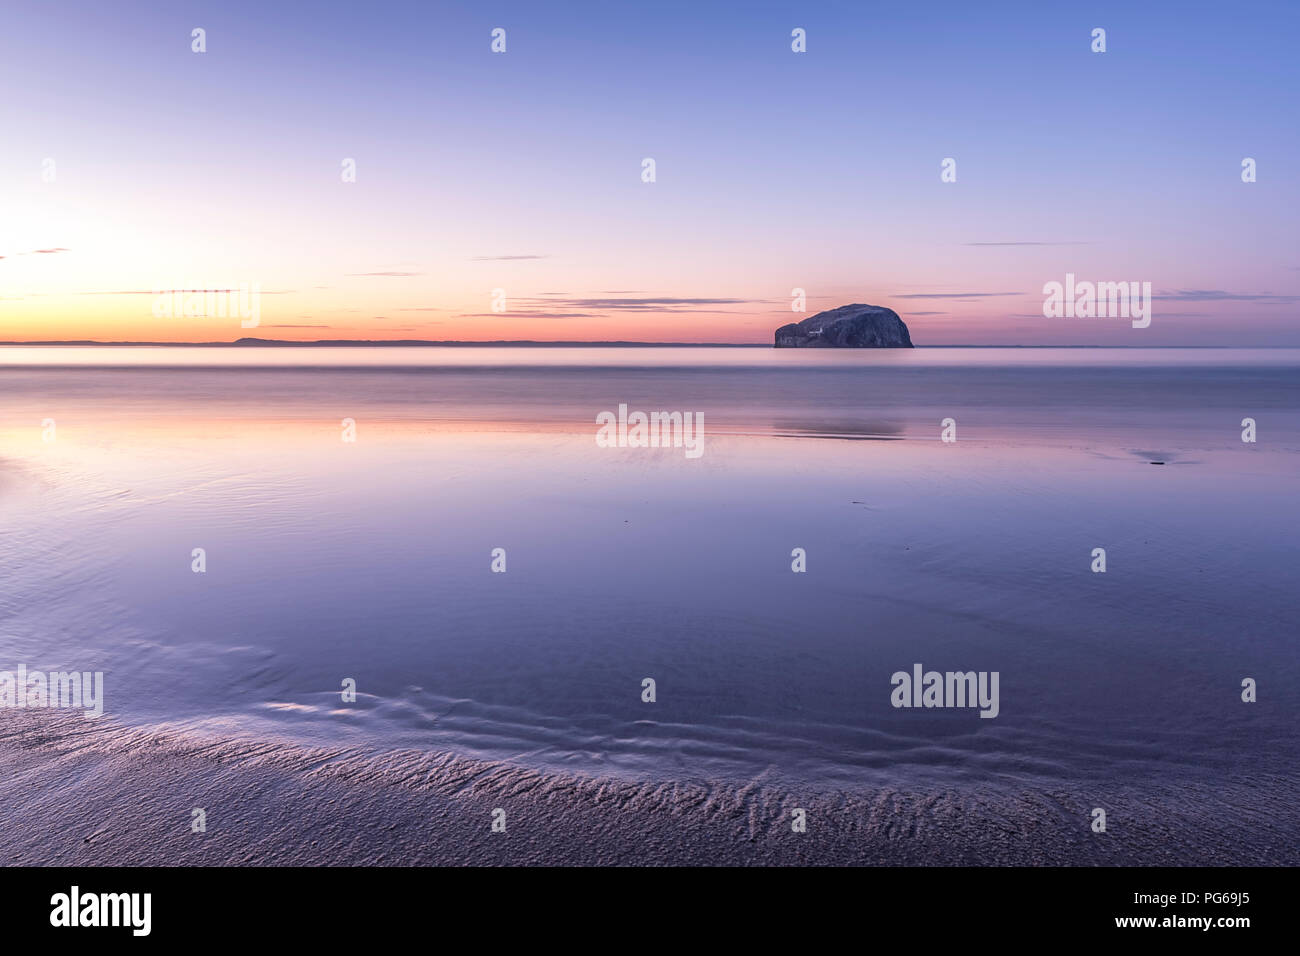 UK, Scotland, East Lothian, North Berwick, Firth of Forth, view of Bass Rock (world famous Gannet Colony) at sunset, Lighthouse, long exposure Stock Photo